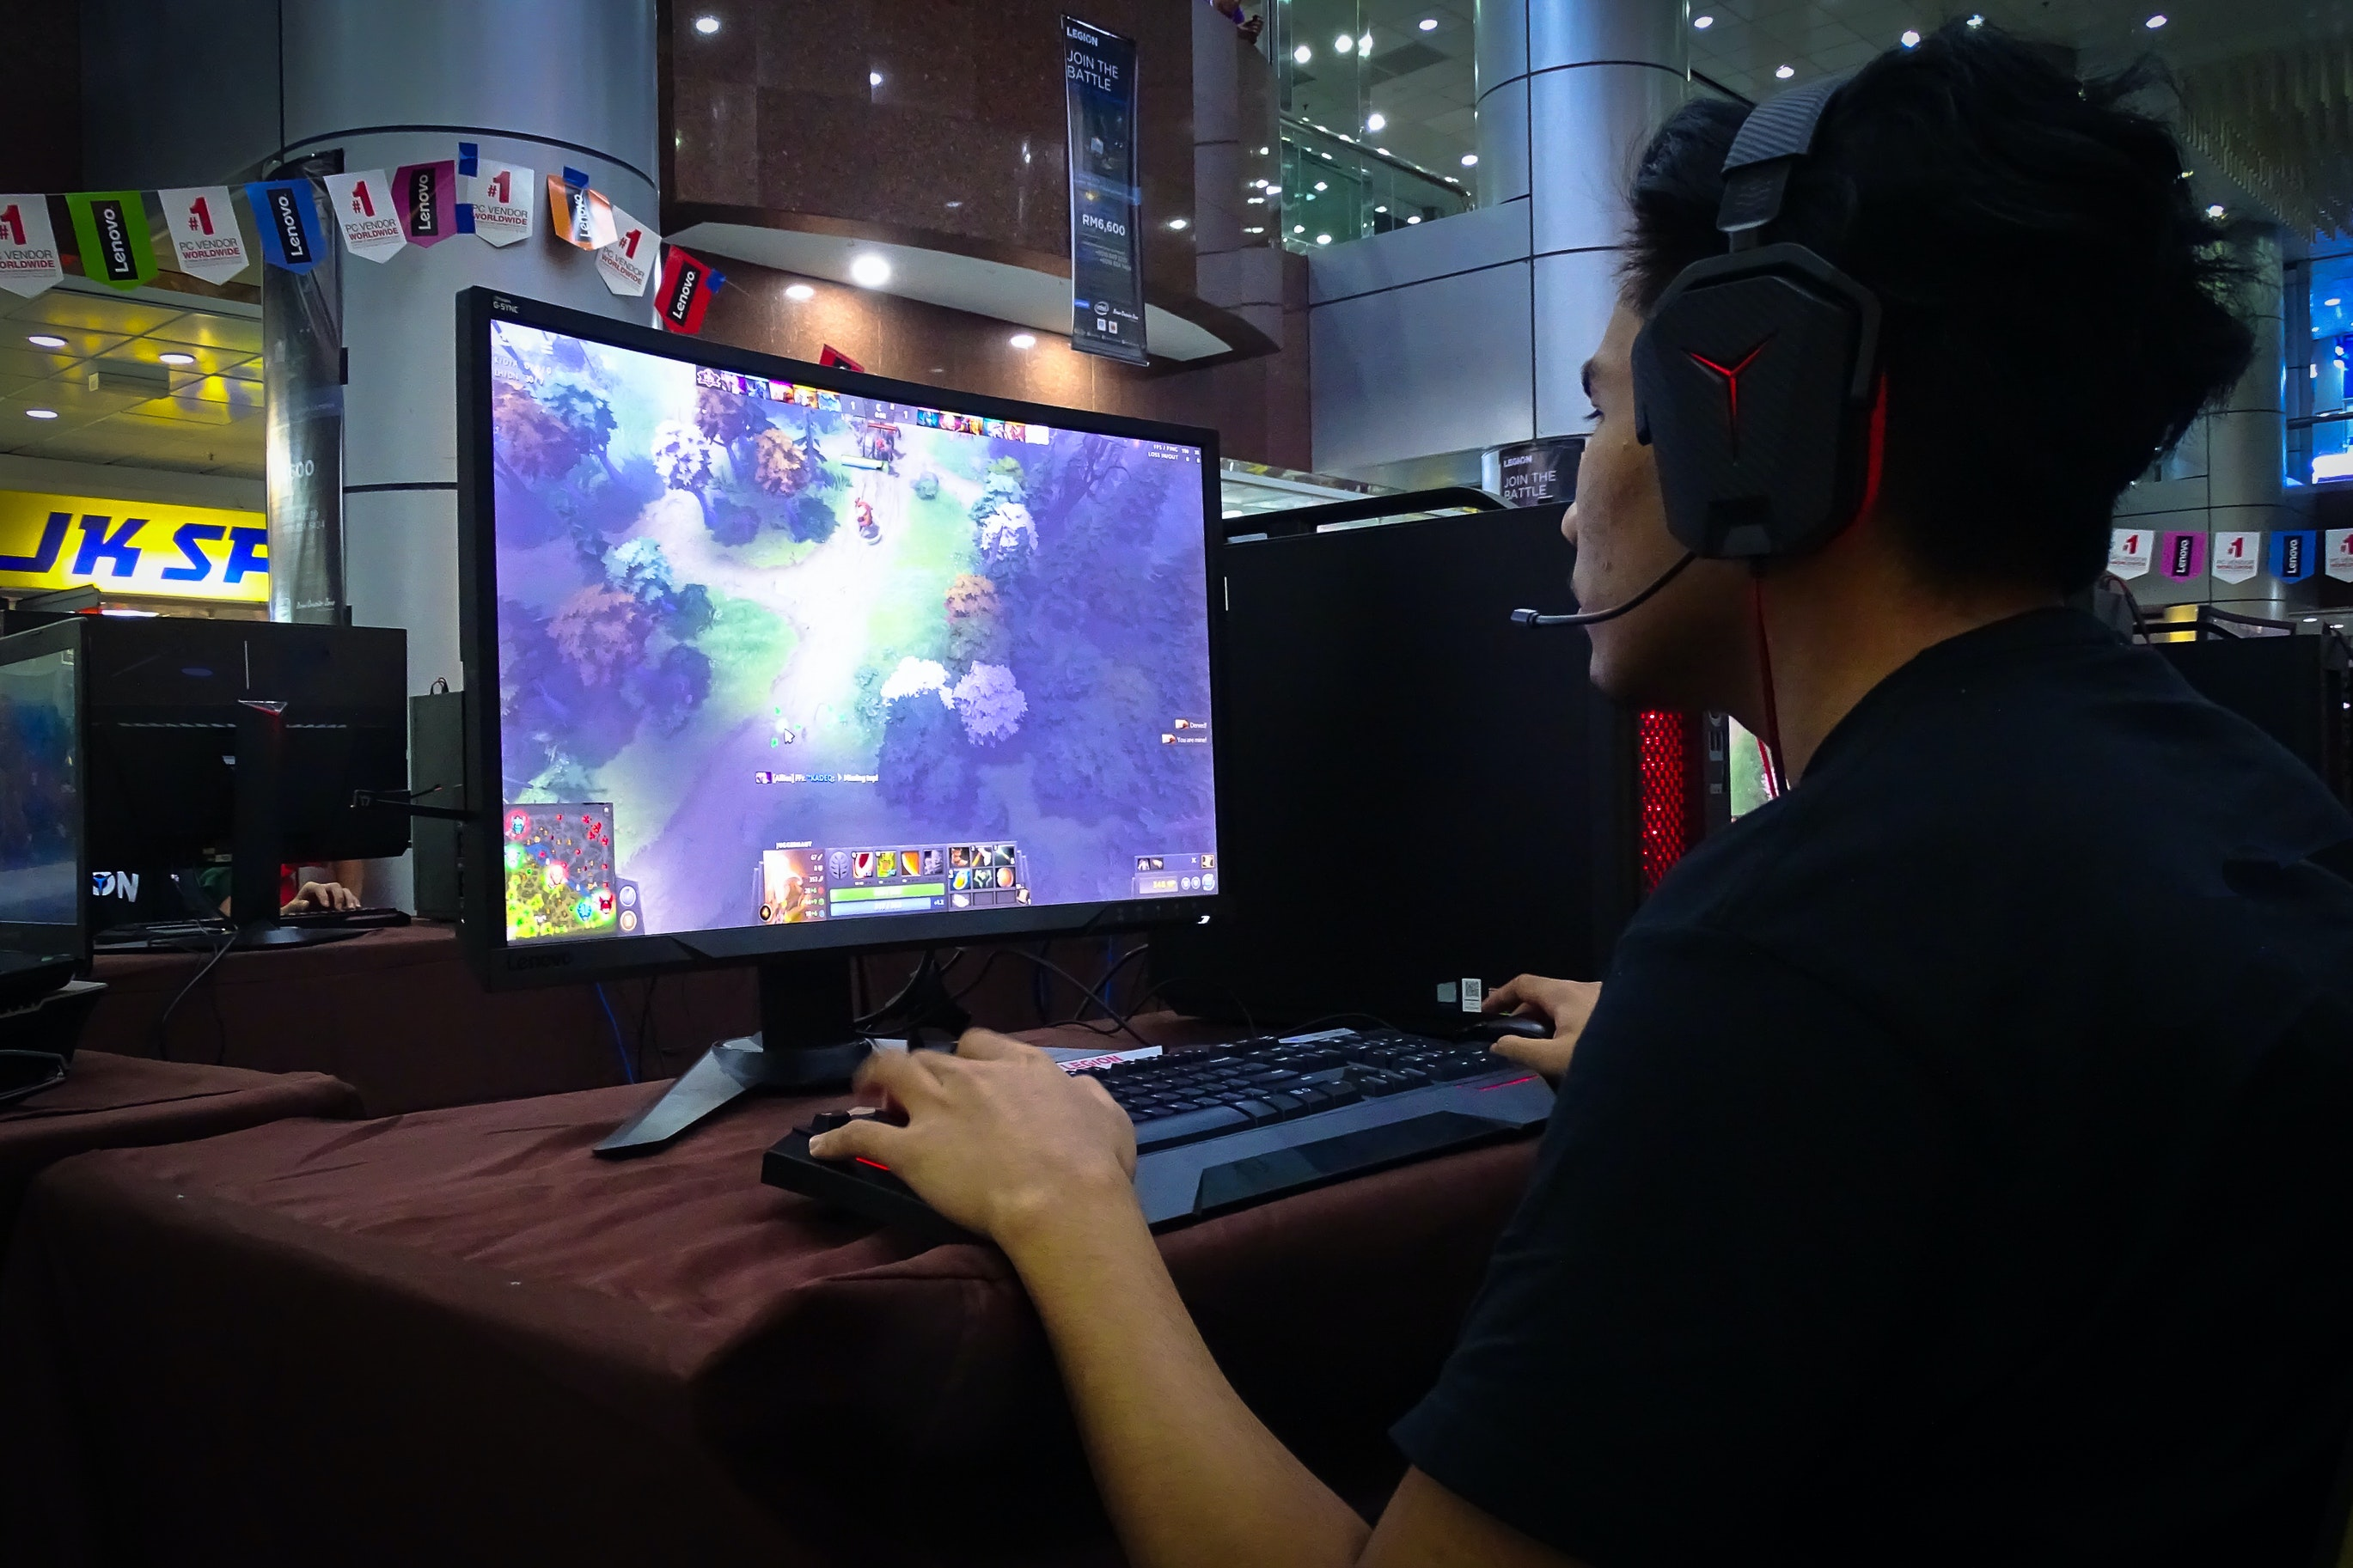 Gamers use machine learning to navigate complex video games – but it's not free